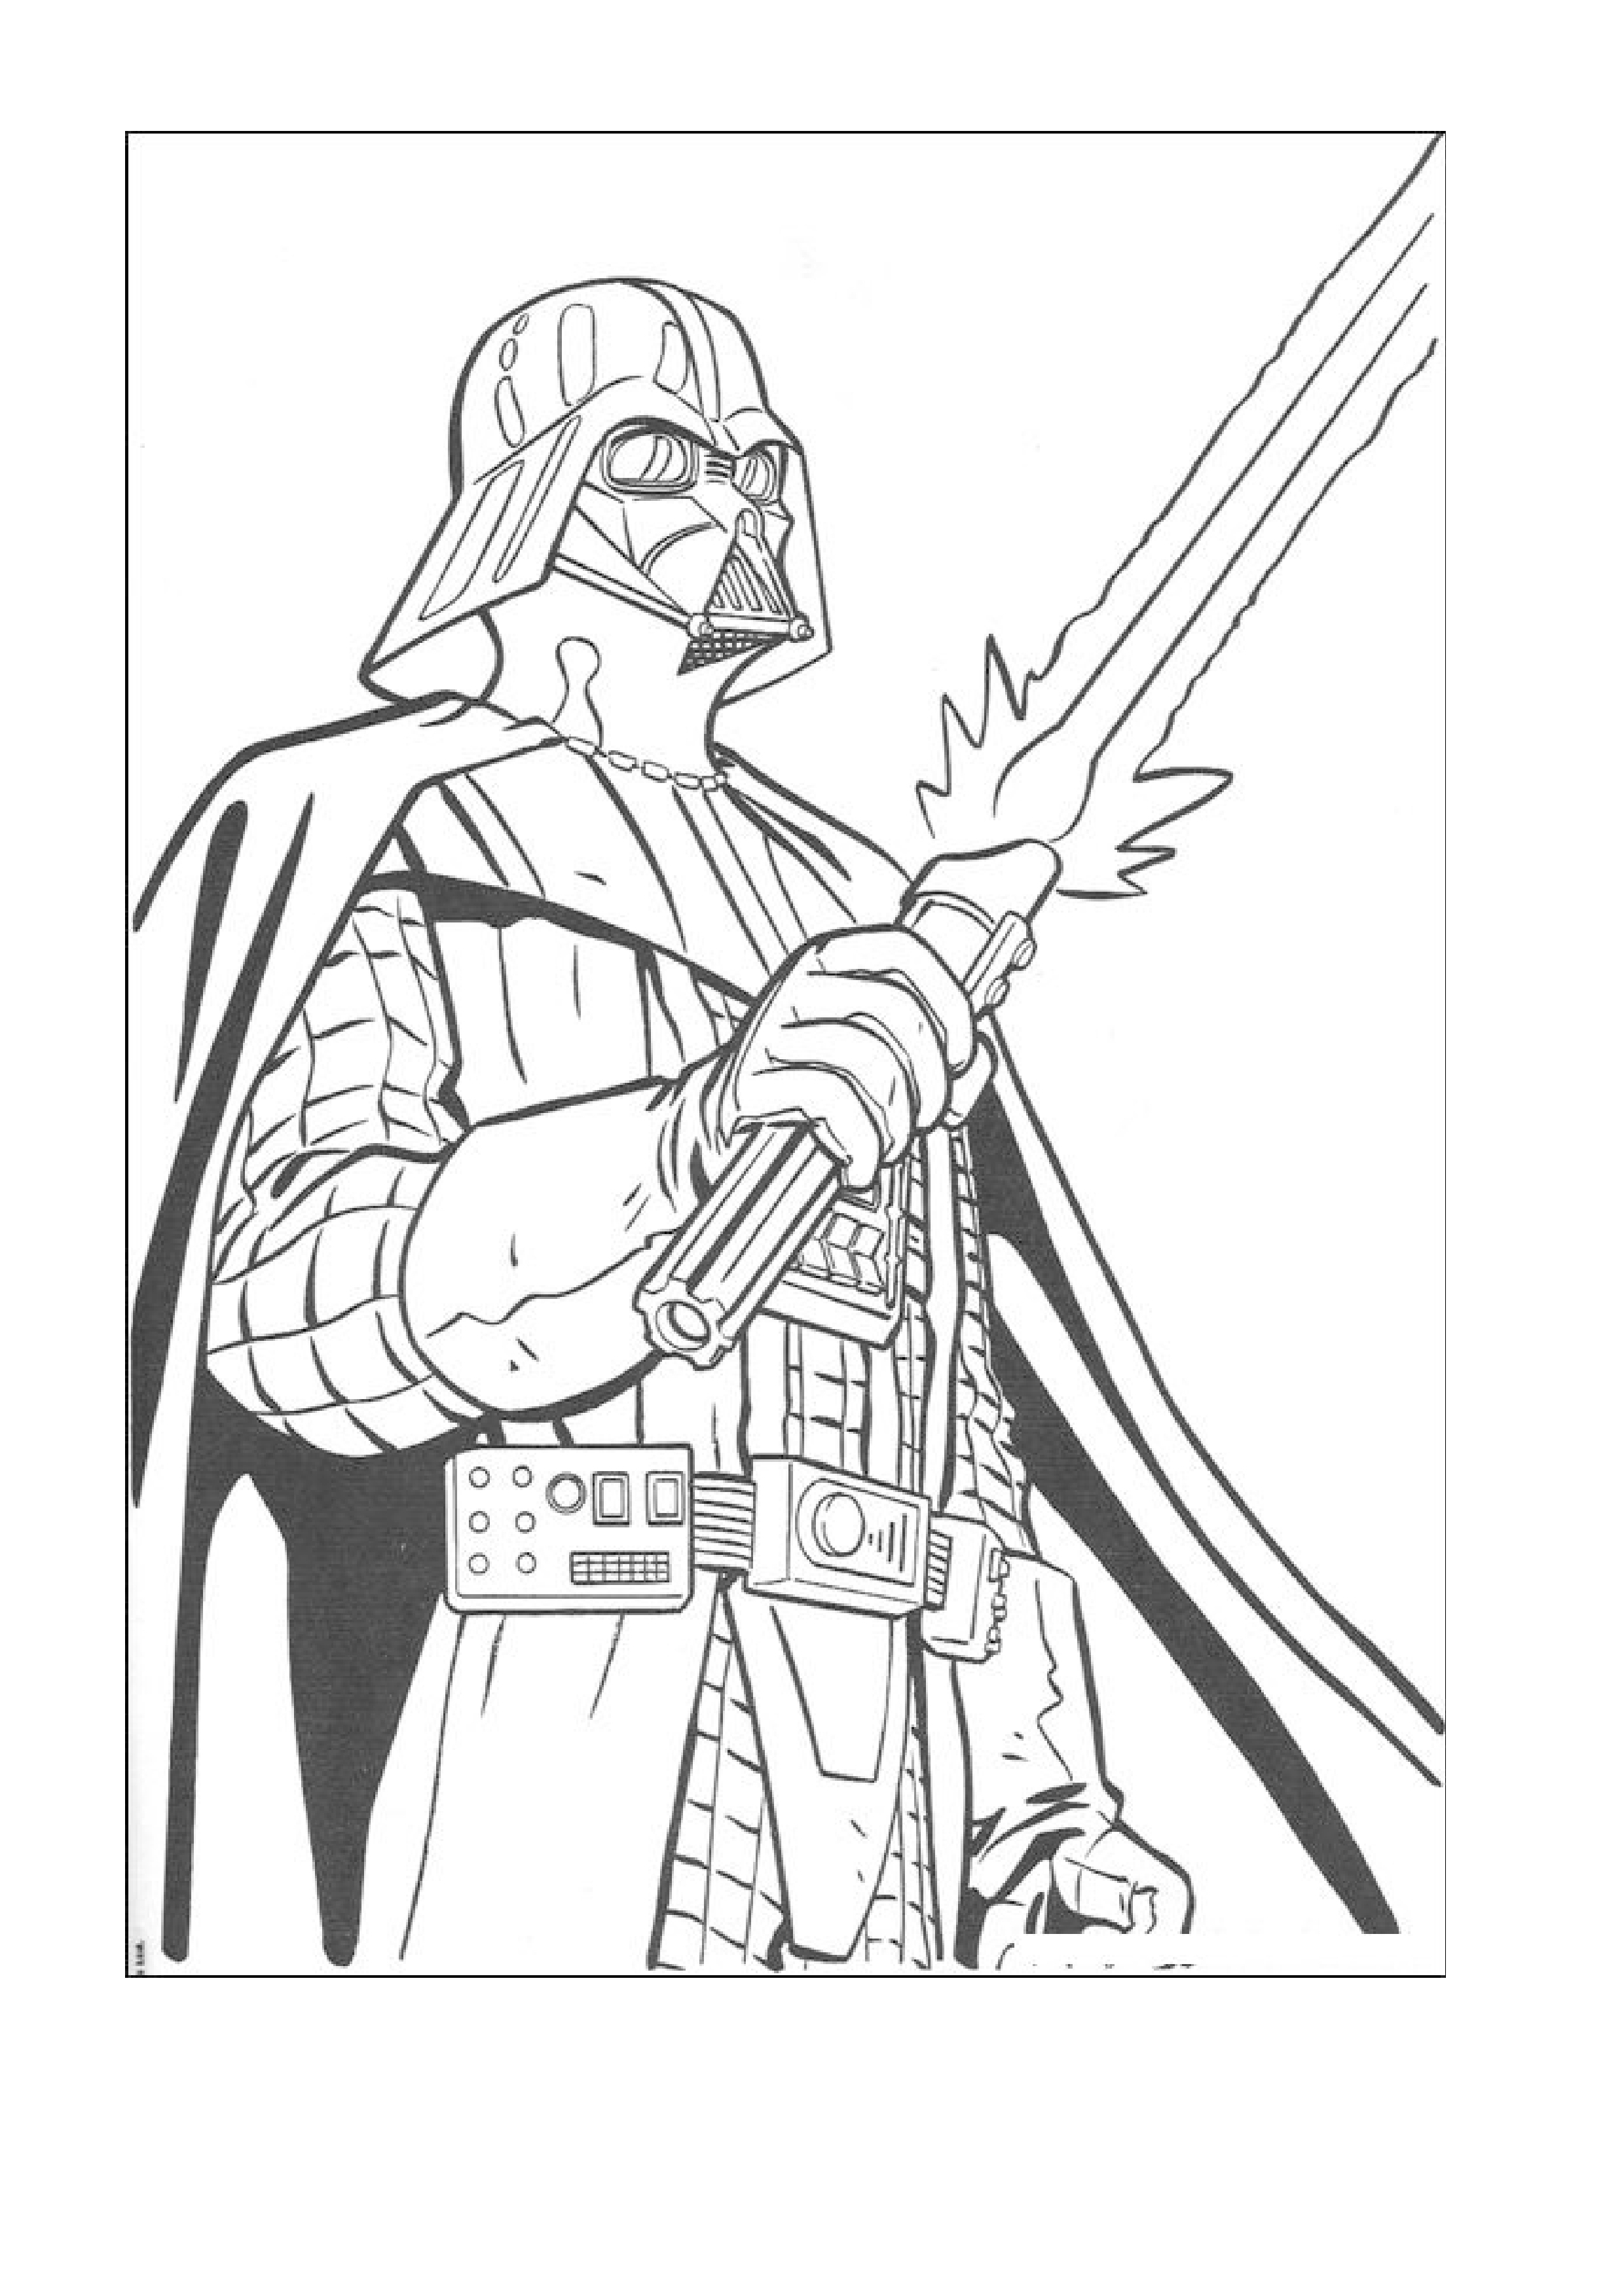 darth vader star wars coloring page